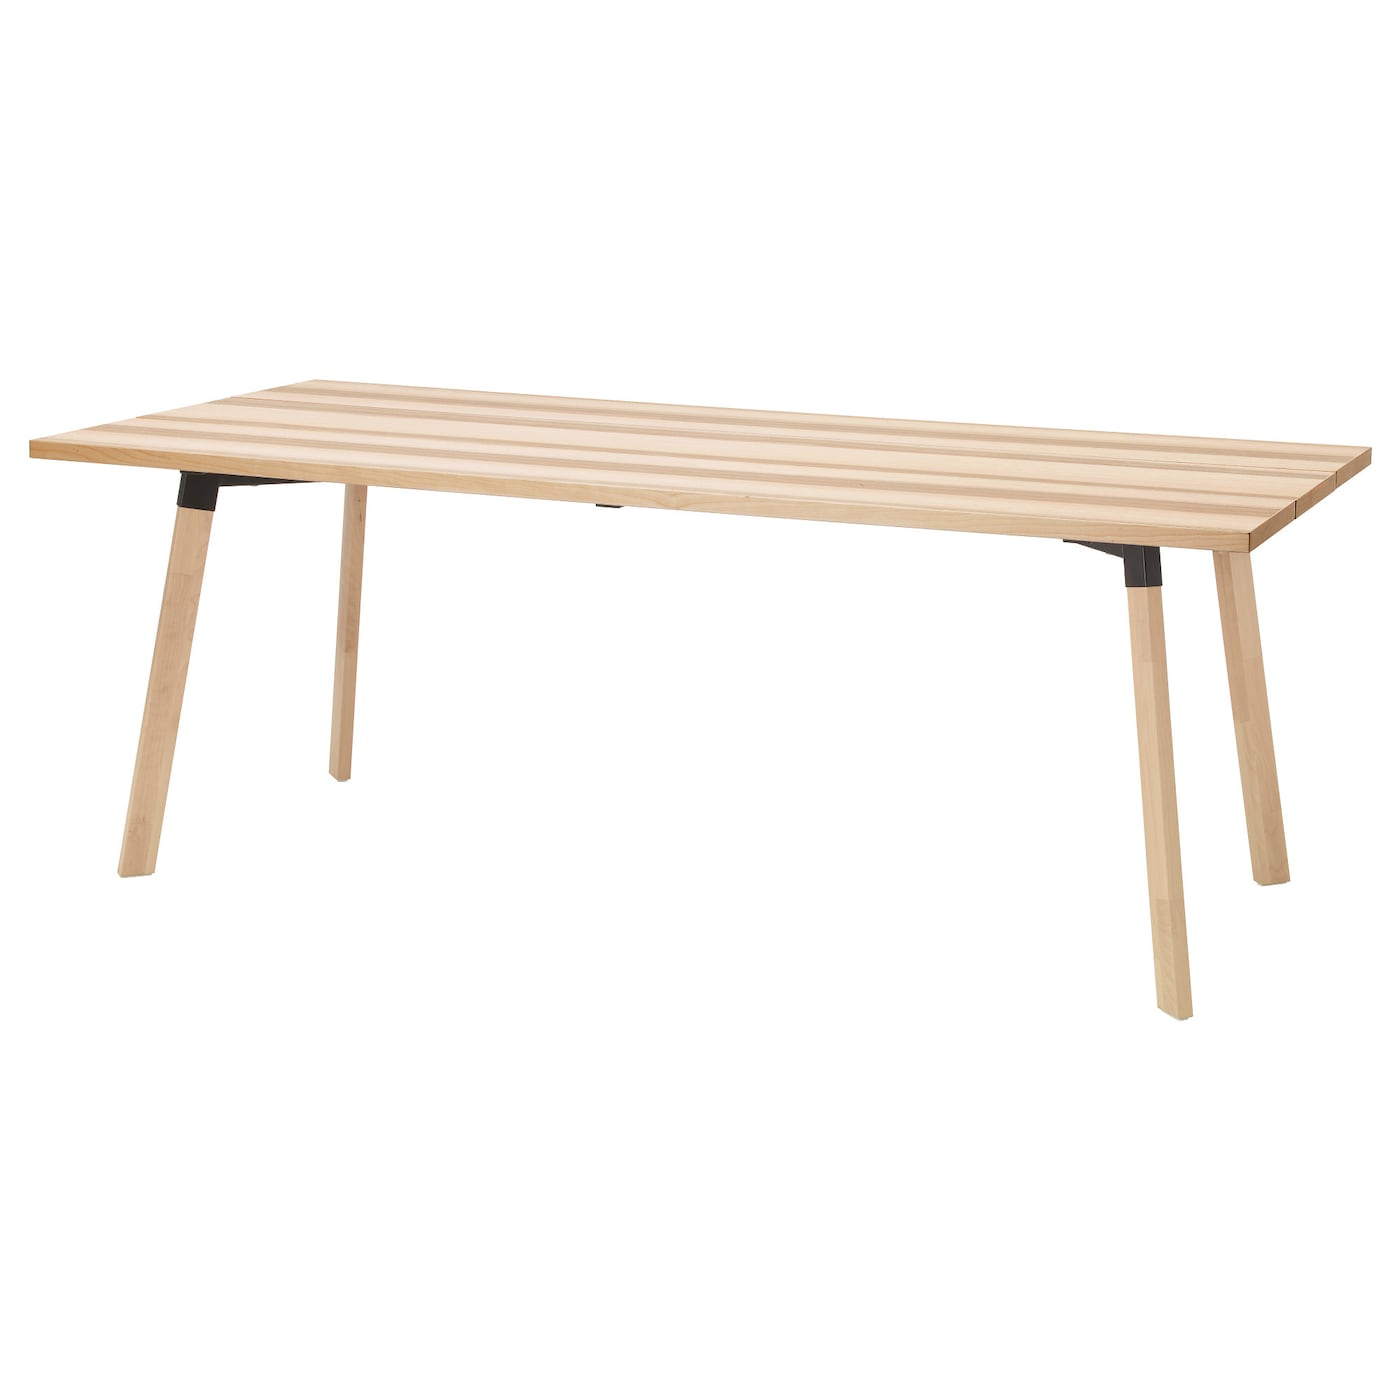 Ikea Breakfast Table: YPPERLIG Table Ash 200 X 90 Cm